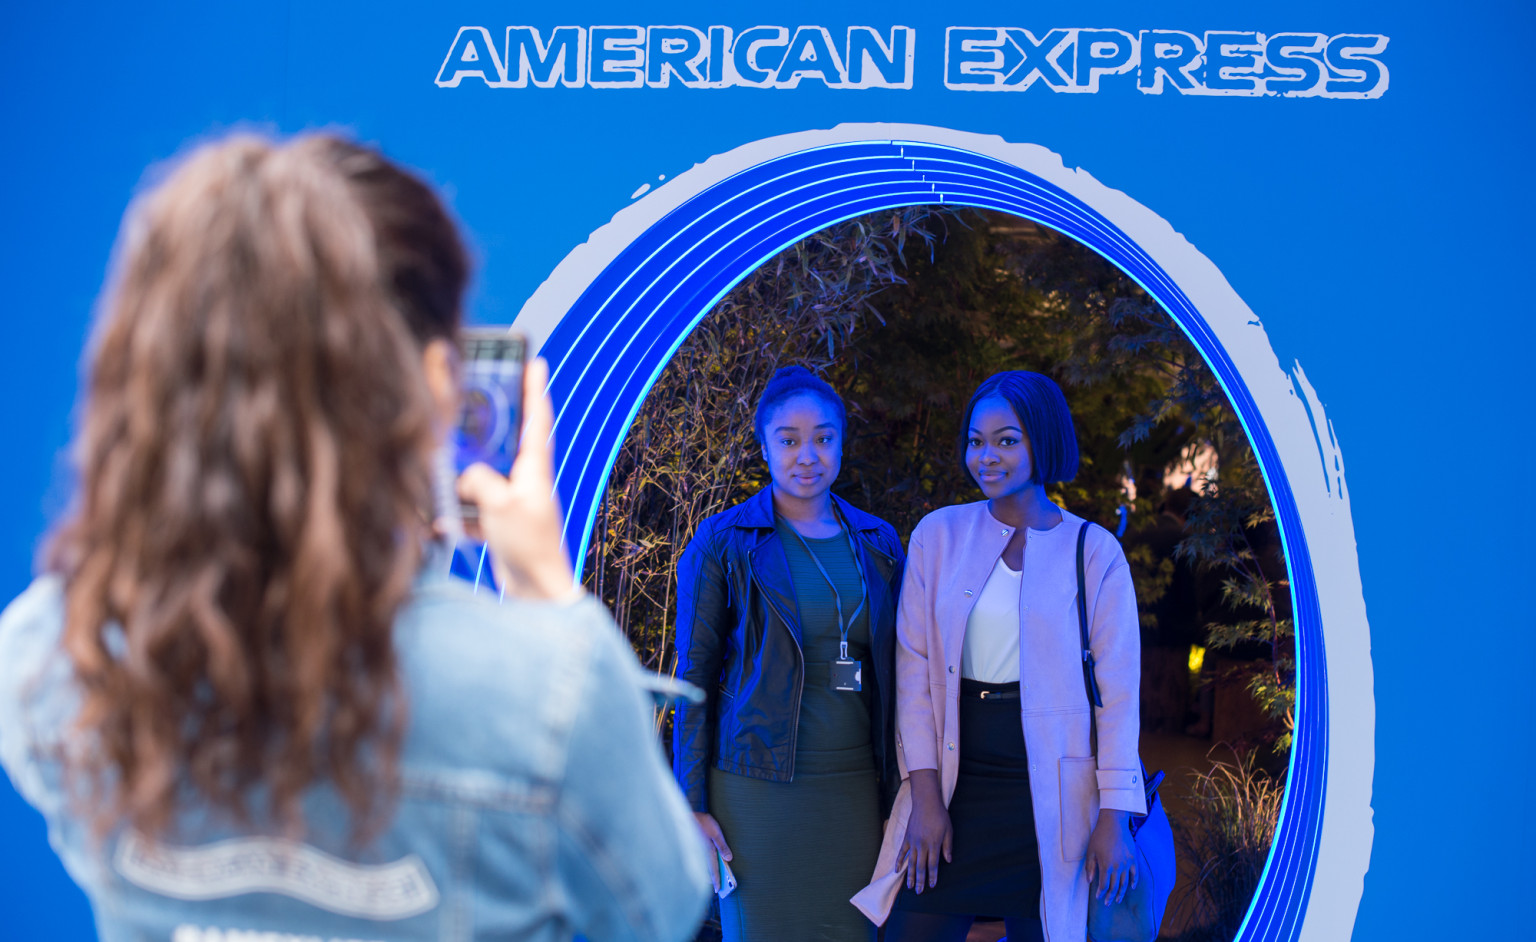 American Express Global Brand Strategy Launch